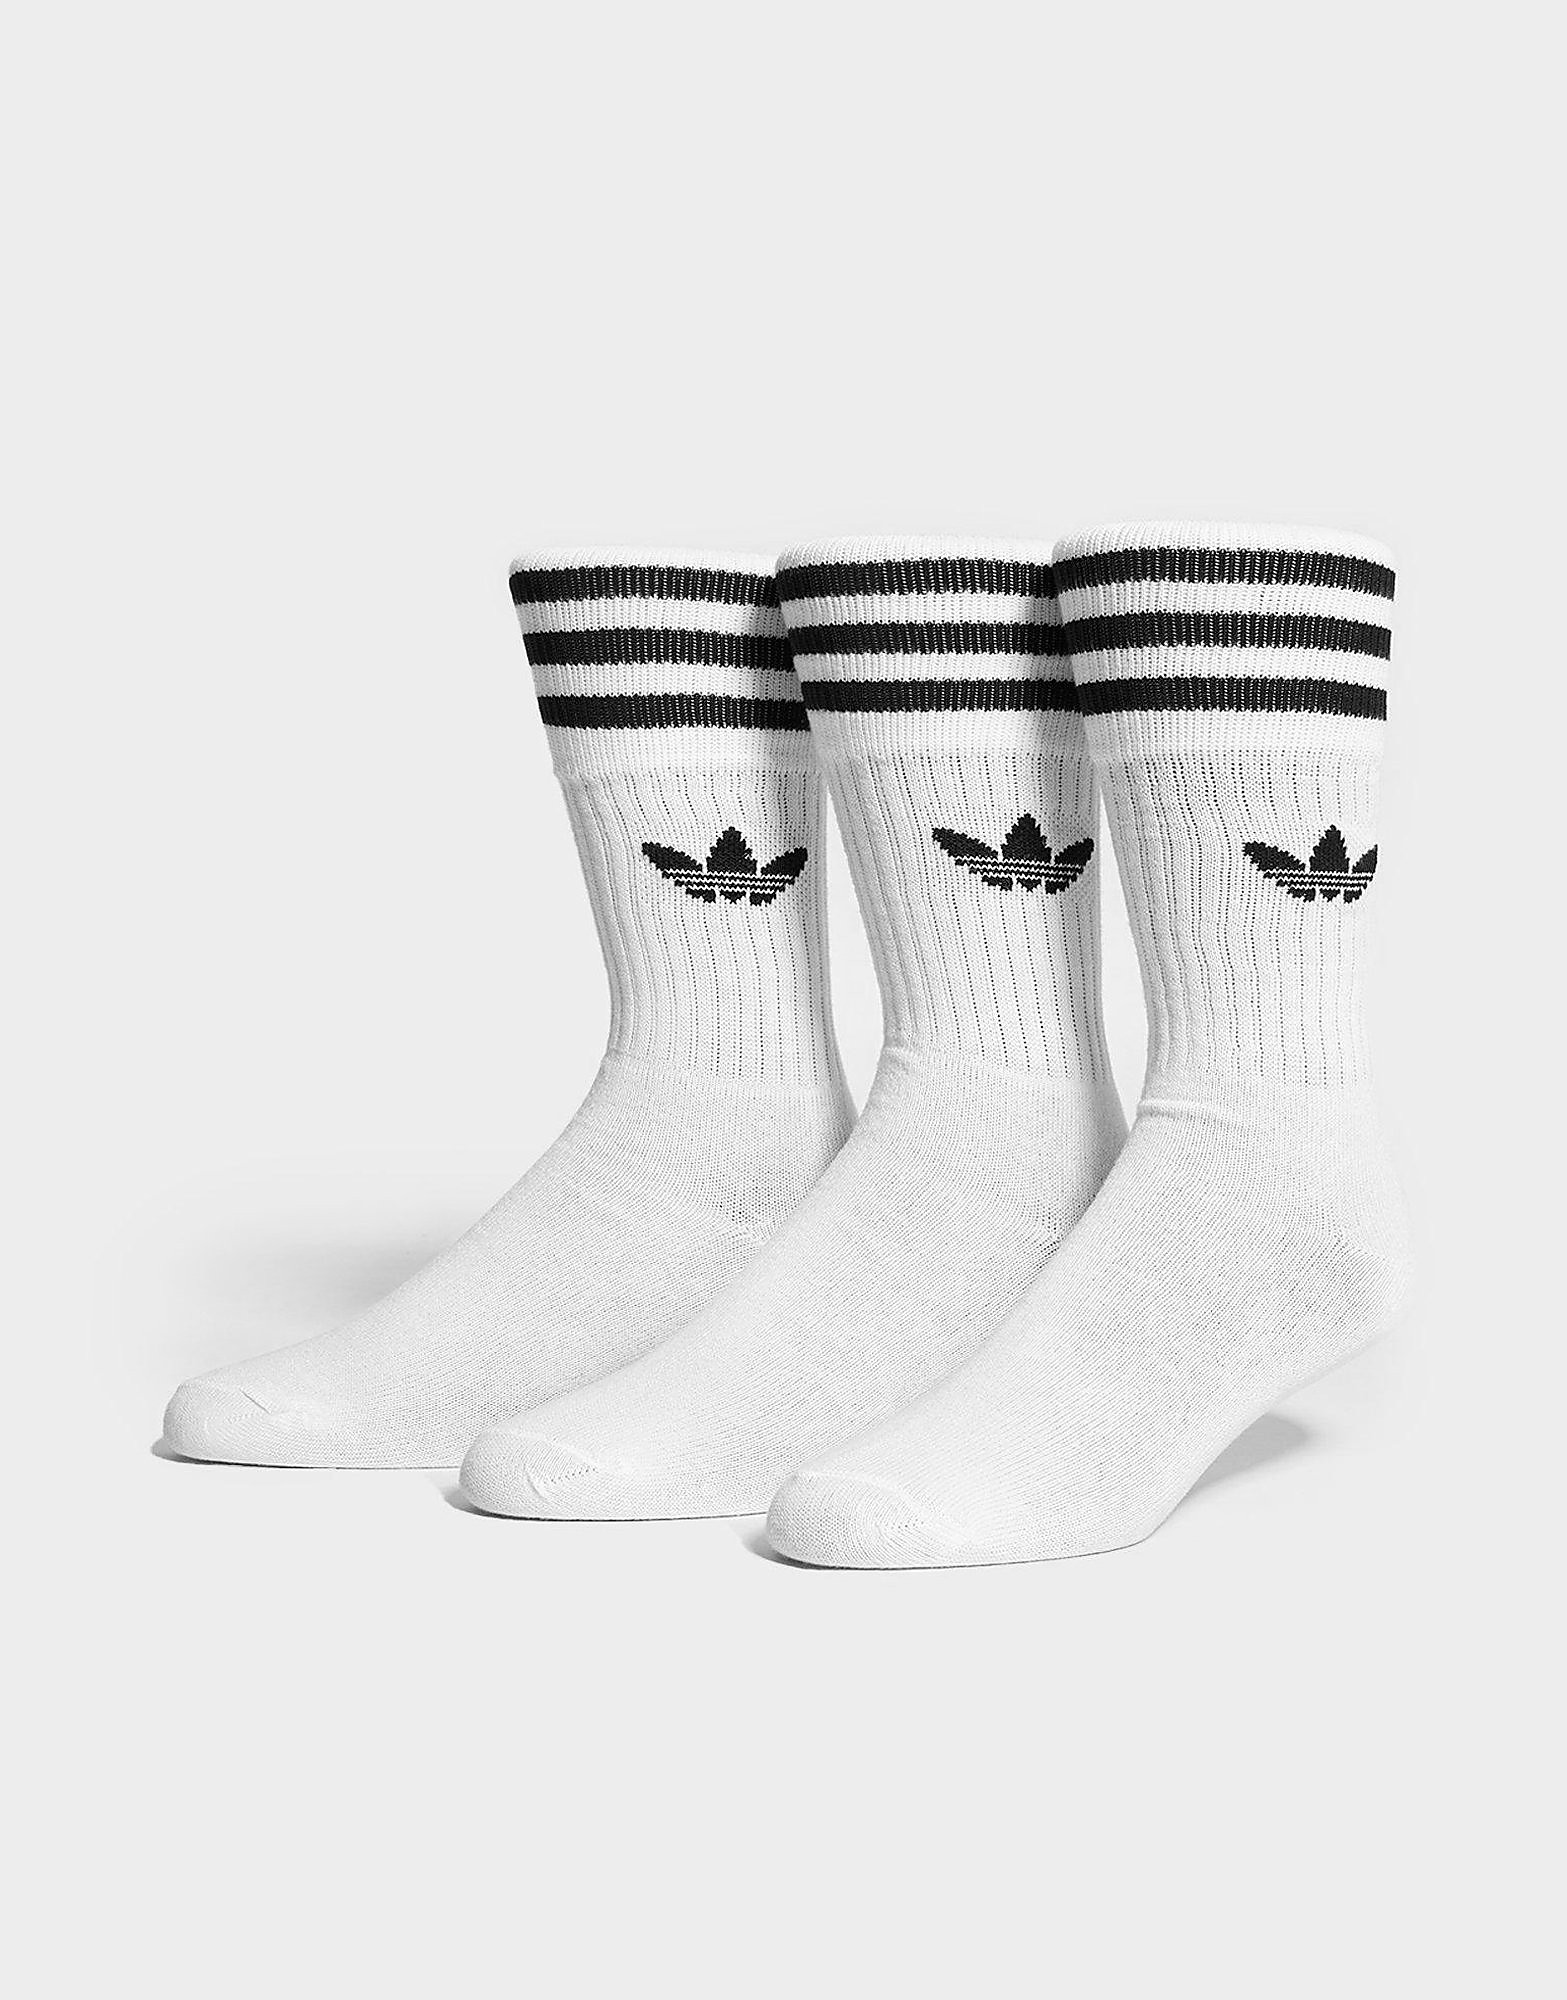 adidas Originals pack de 3 calcetines